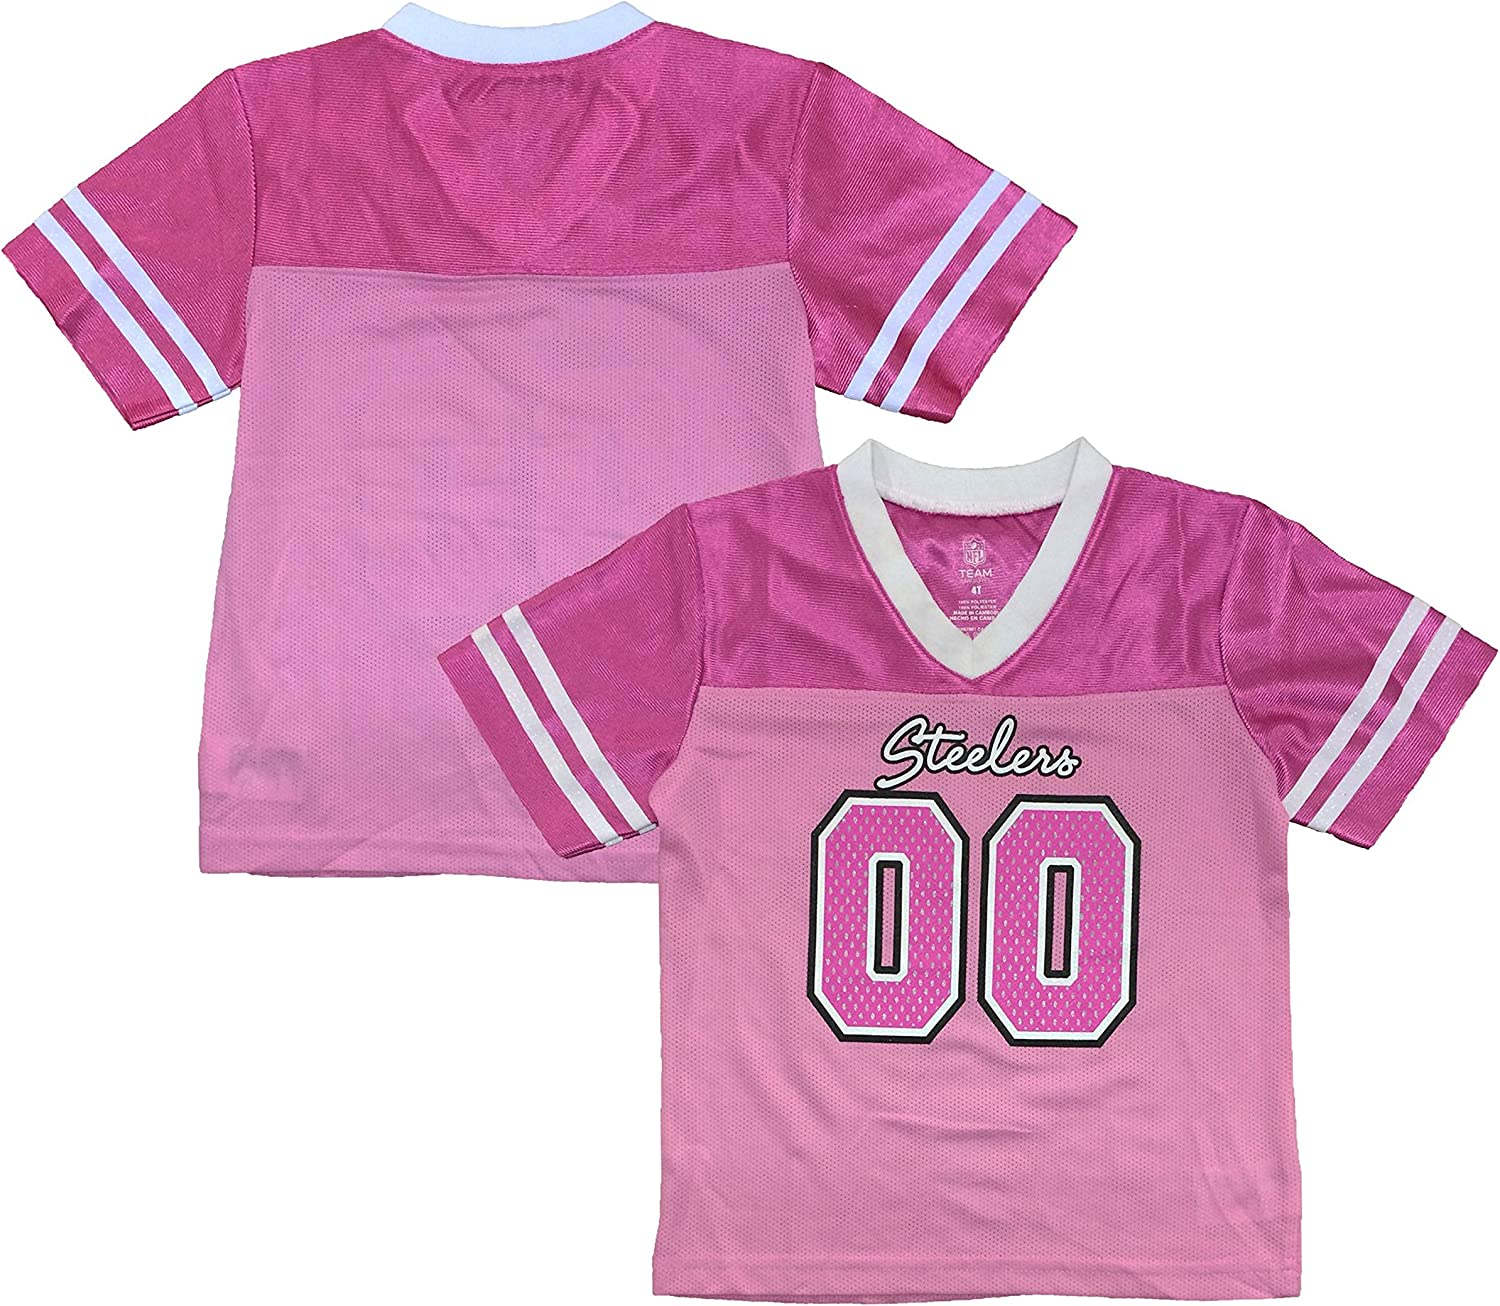 Outerstuff Washington Mall Pittsburgh Steelers #00 Dazzle Jerse Girls Youth Super sale Pink